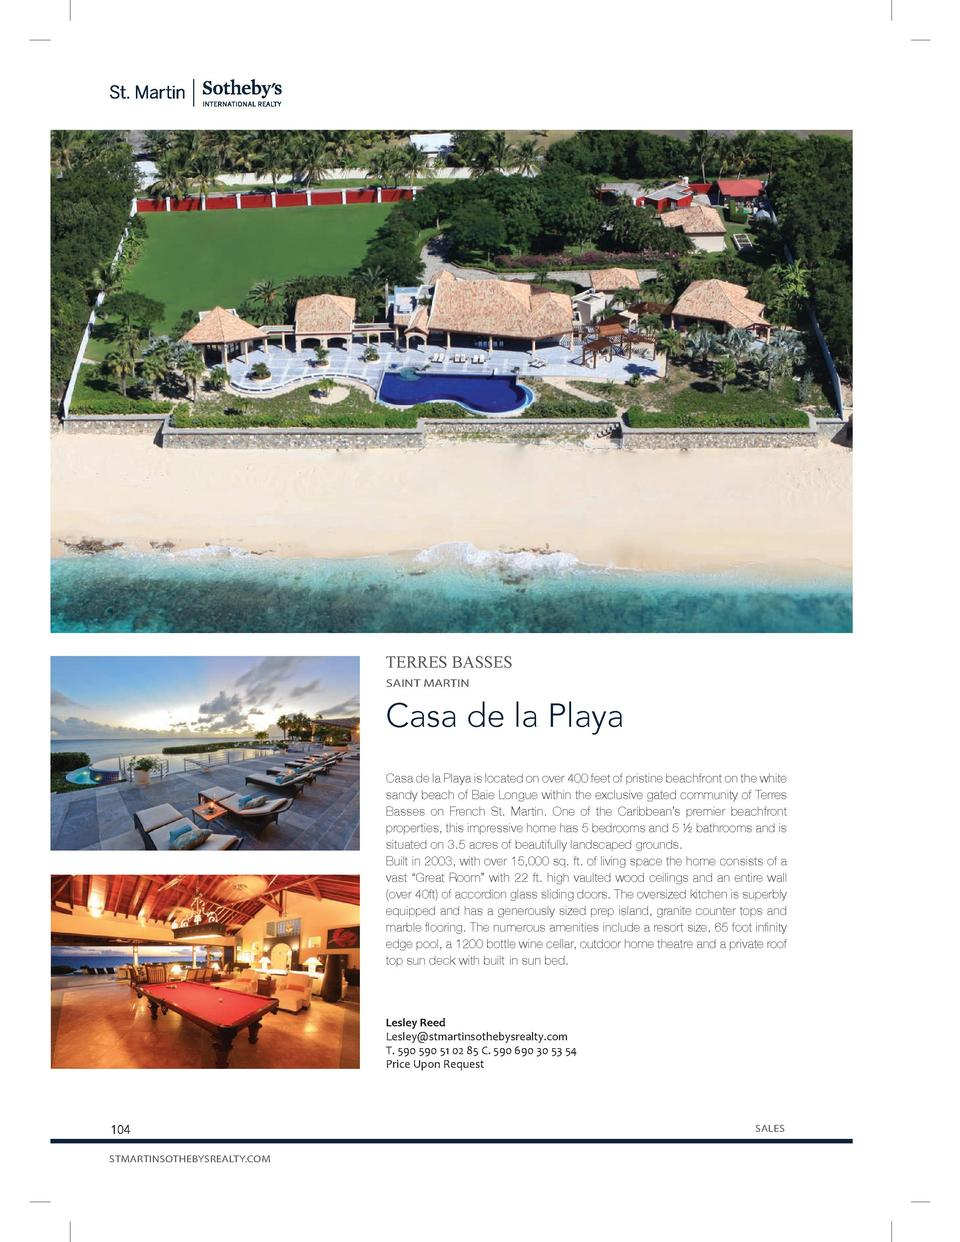 TERRES BASSES SAINT MARTIN  Casa de la Playa Casa de la Playa is located on over 400 feet of pristine beachfront on the wh...